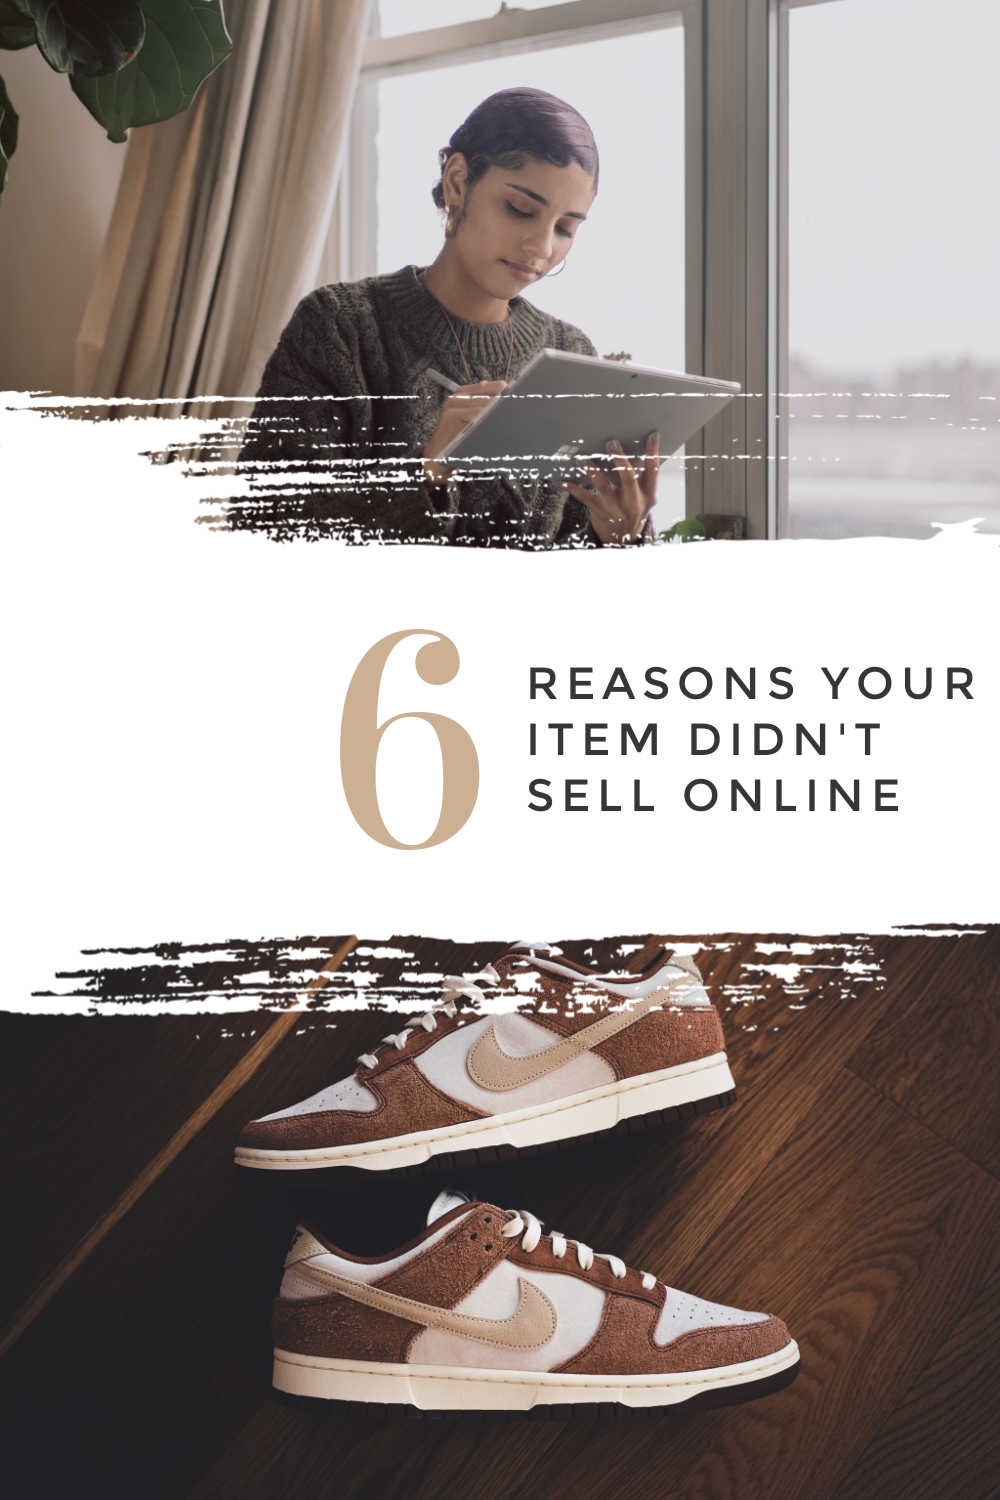 6 REASONS YOUR ITEM DIDN'T SELL ONLINE